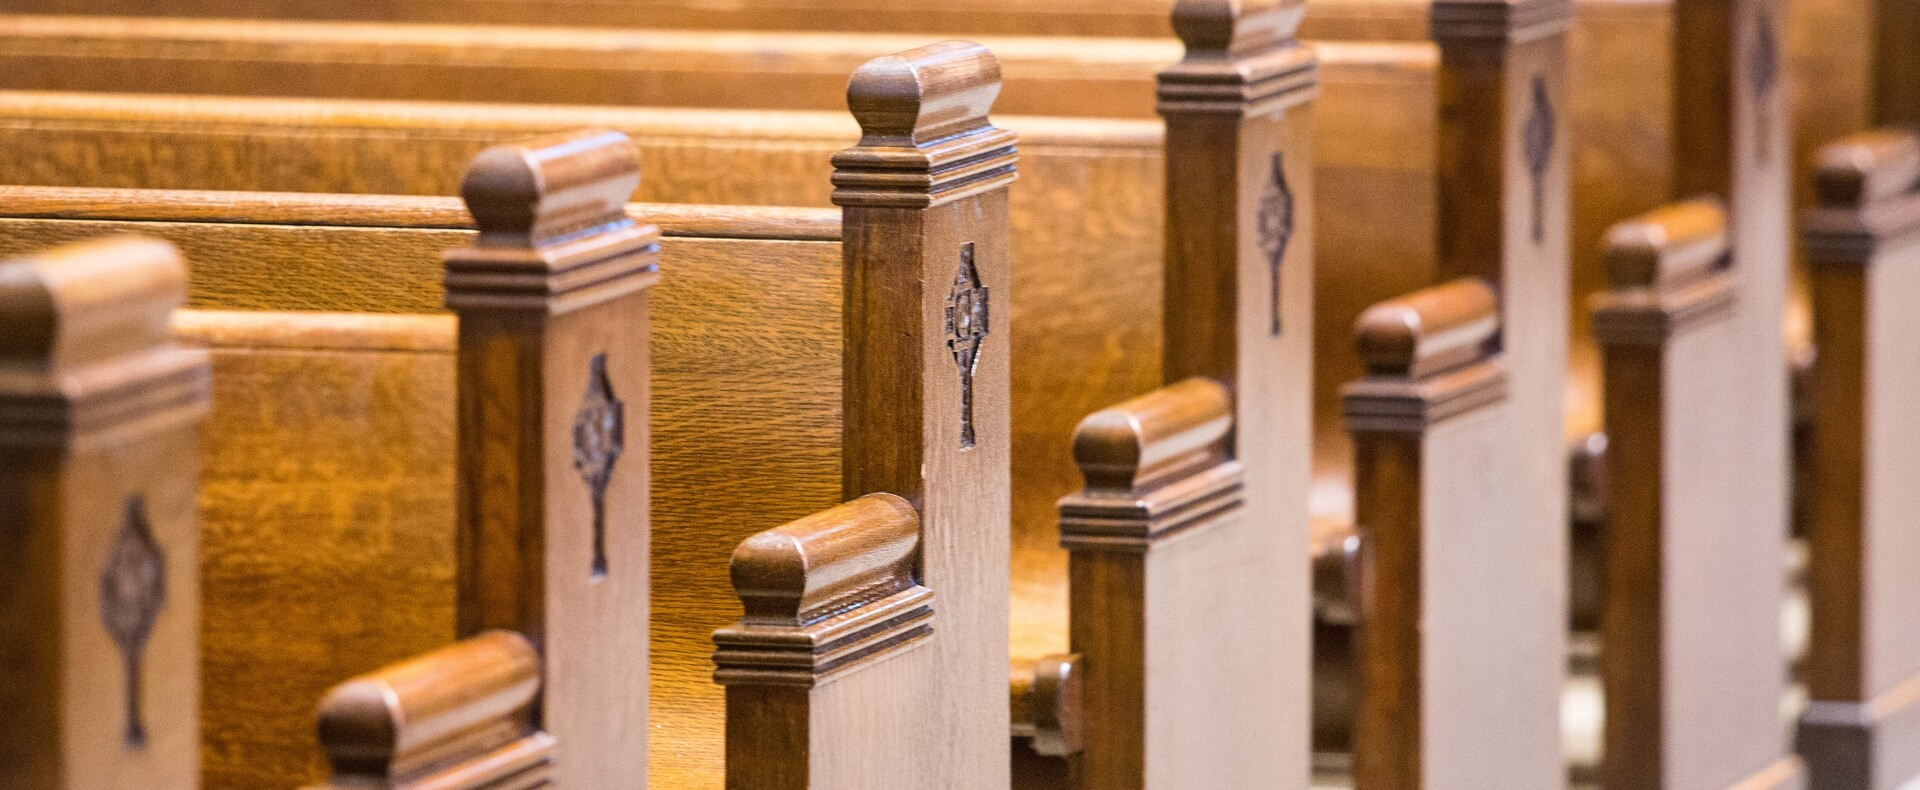 These church pews are waiting for your church family - Real Estate Professional Services - The Church Specialists